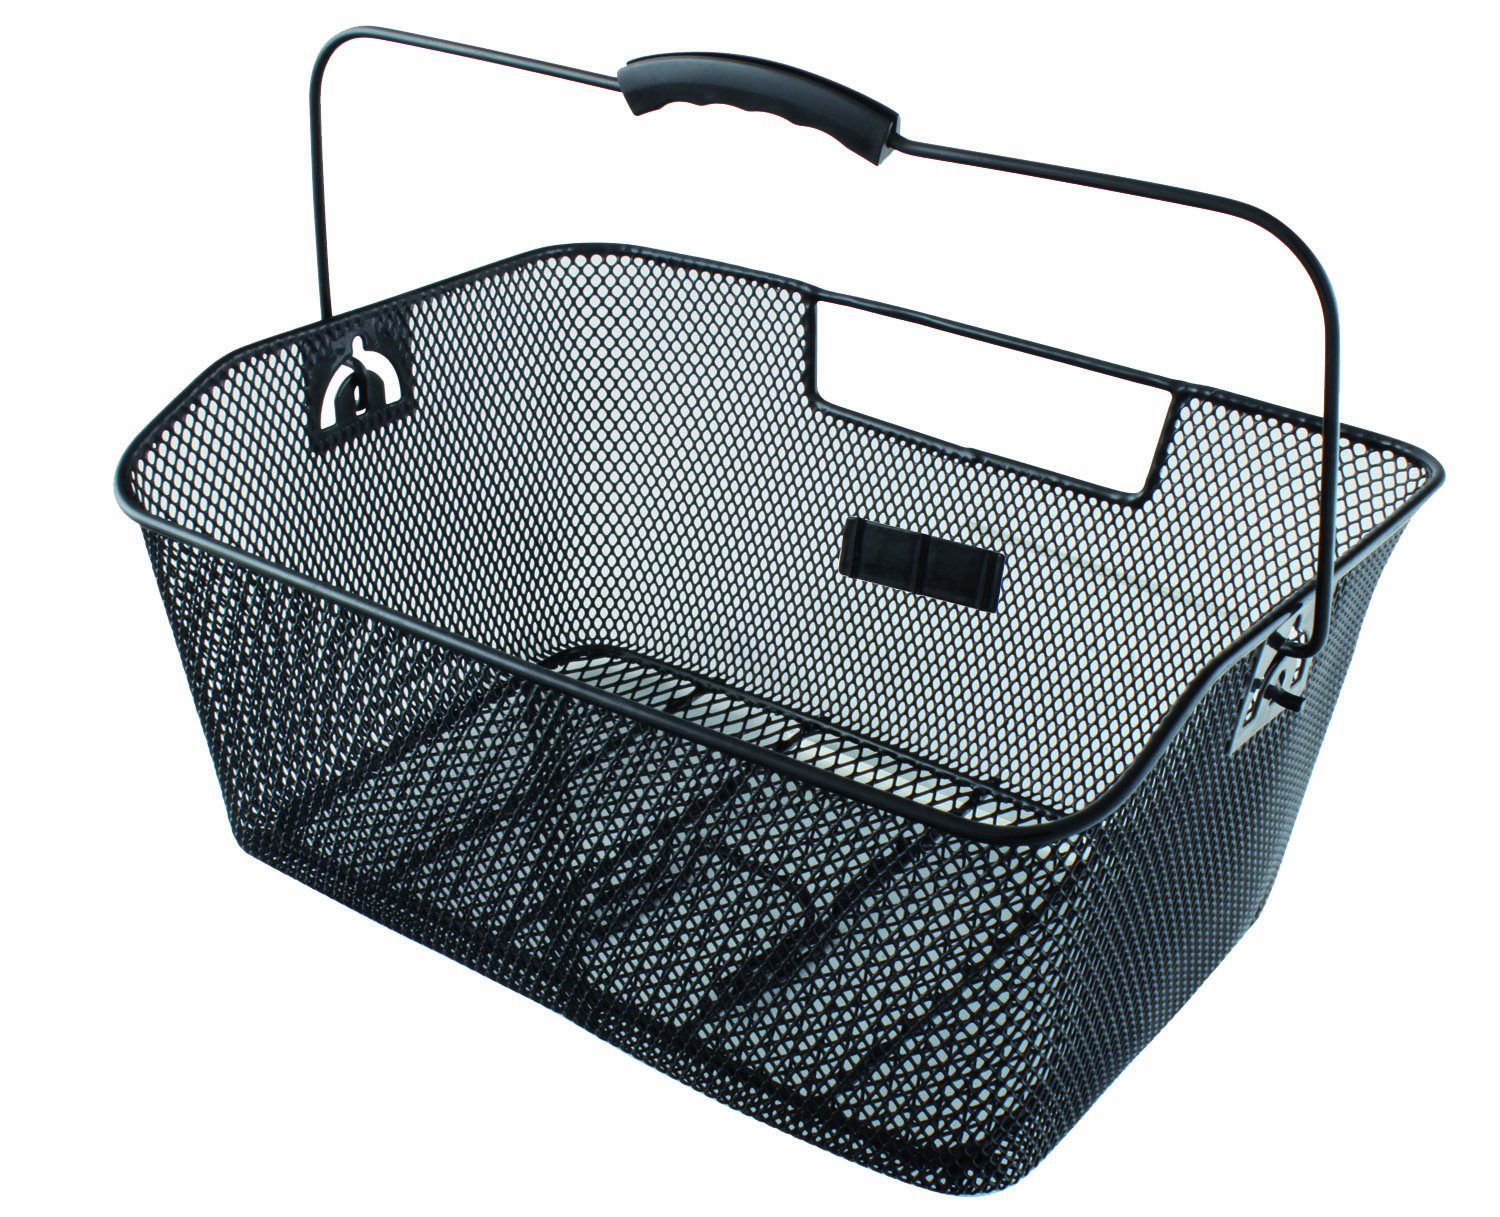 M Wave Front Or Rear Bicycle Wire Basket: Amazon.co.uk: Sports ...